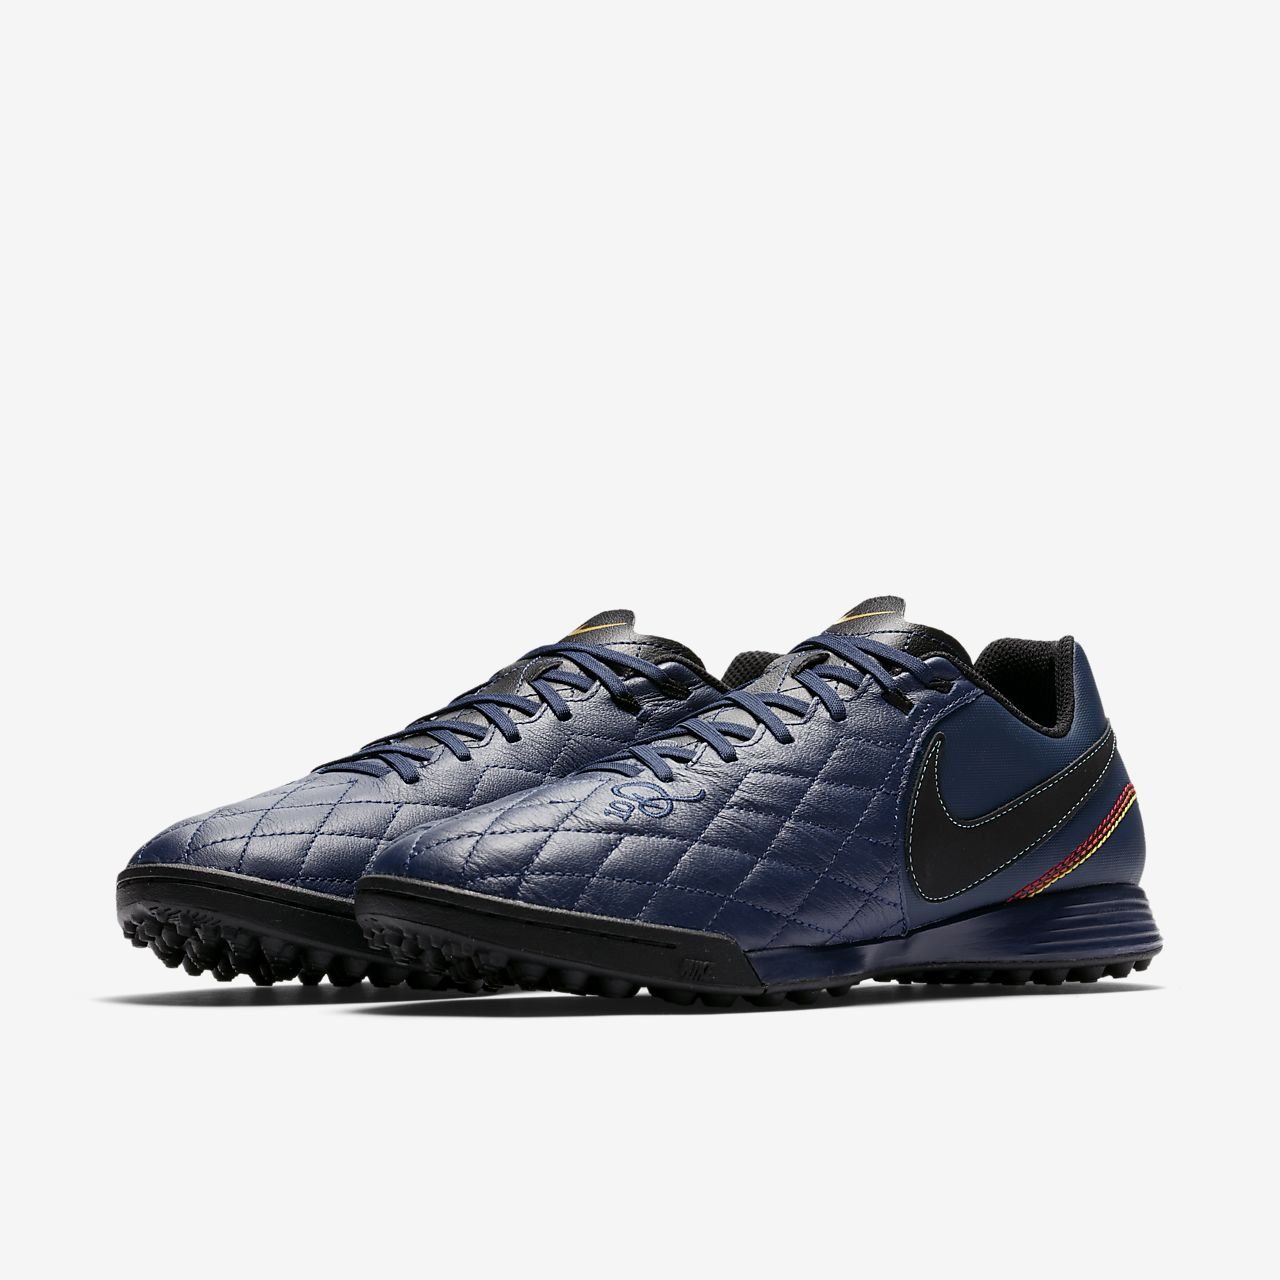 ... Nike TiempoX Ligera IV 10R TF Artificial-Turf Football Boot